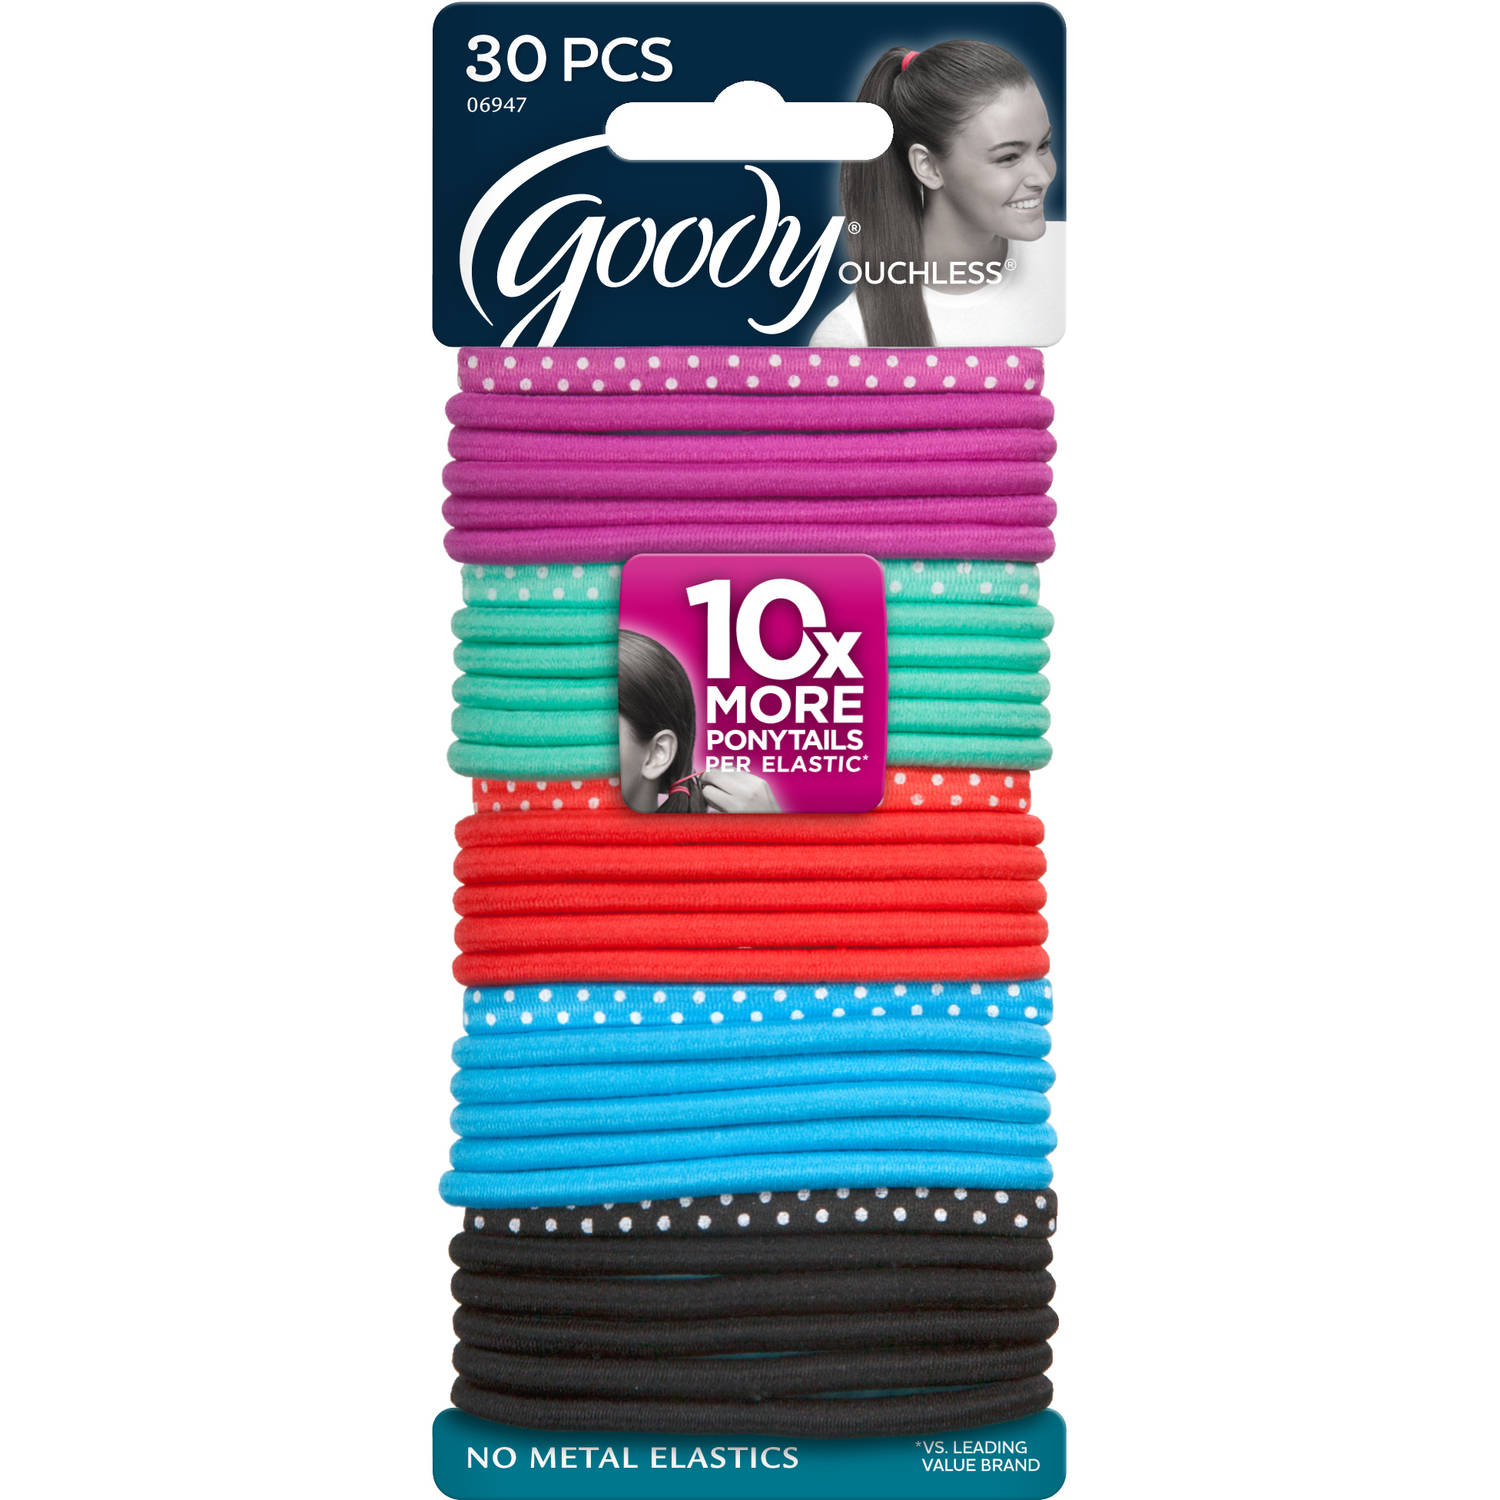 Goody Ouchless Elastics, Polka Dot, 30 count